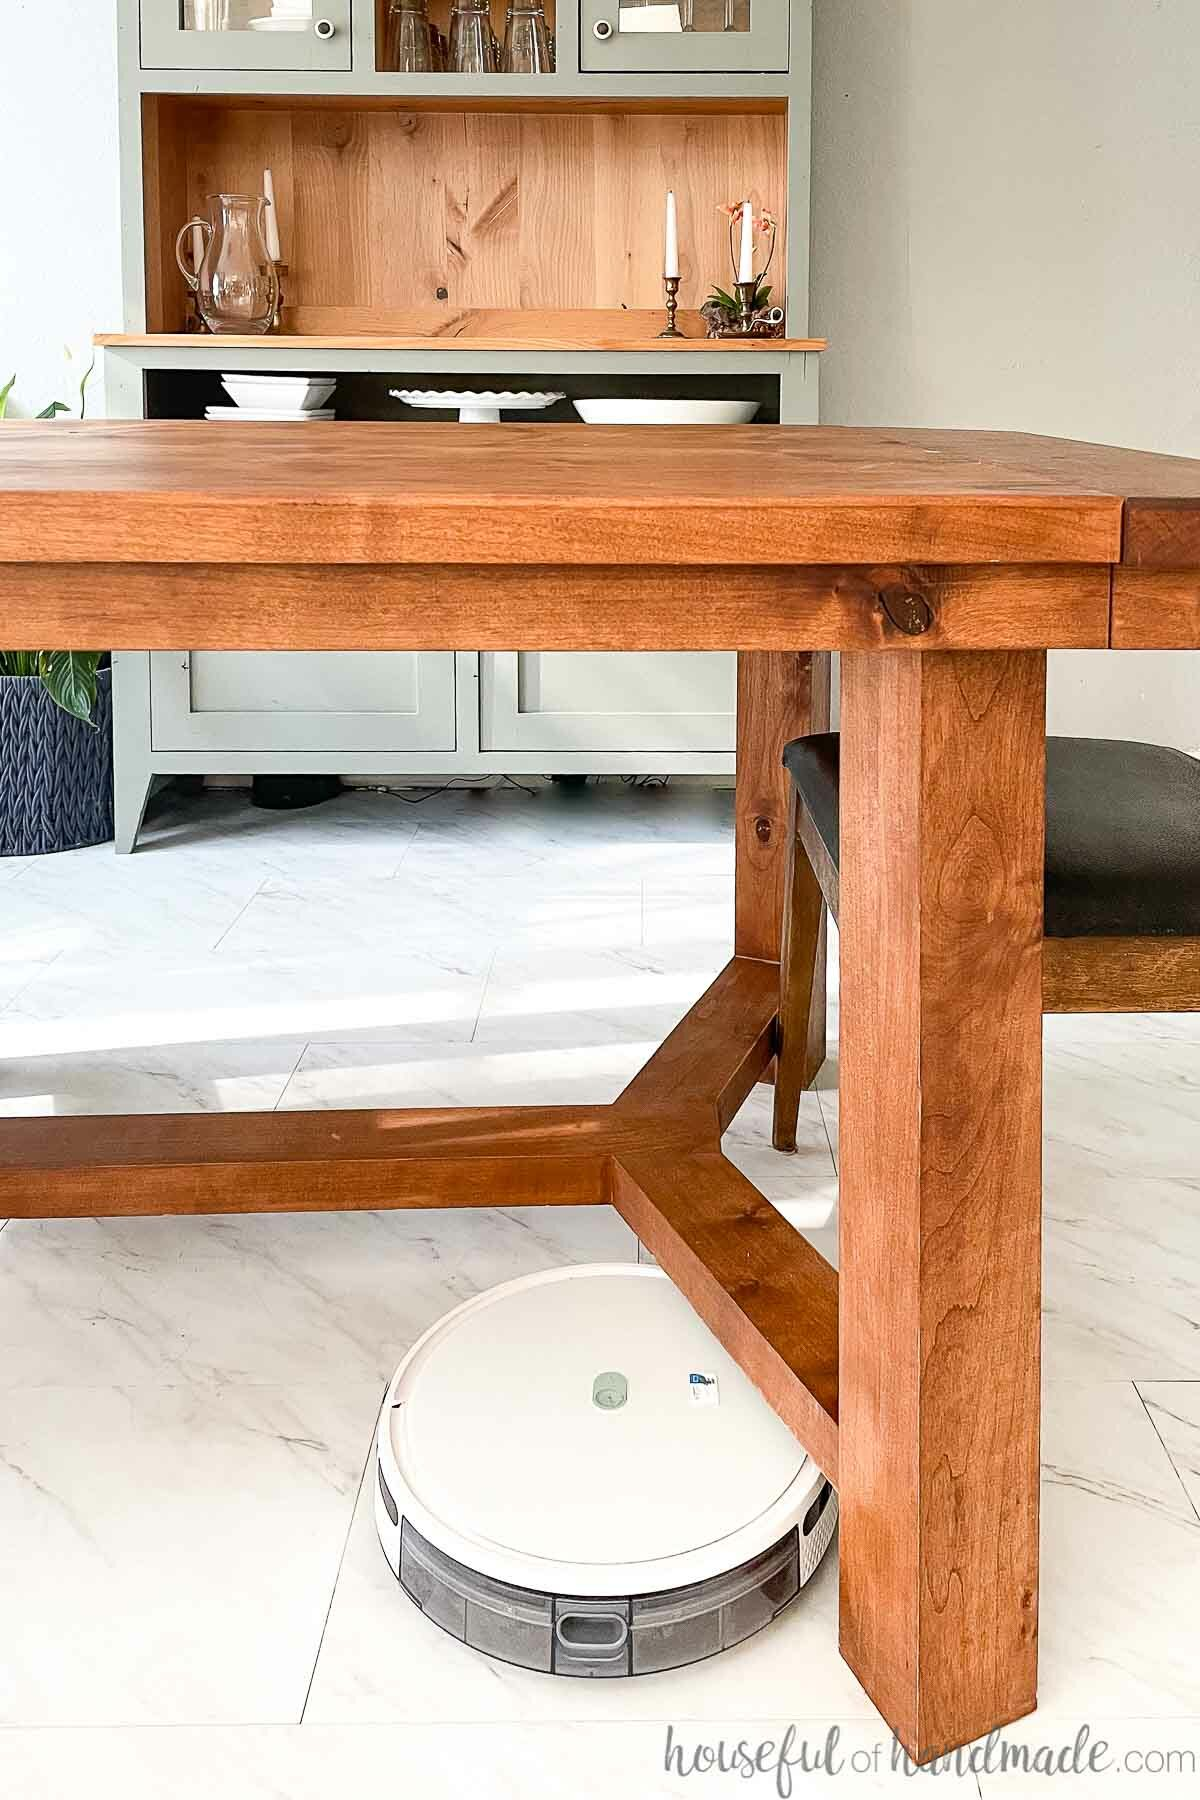 White Yeedi robot vacuum cleaning under a dining table made with enough clearance to make is robot vacuum friendly with a hutch in the background.